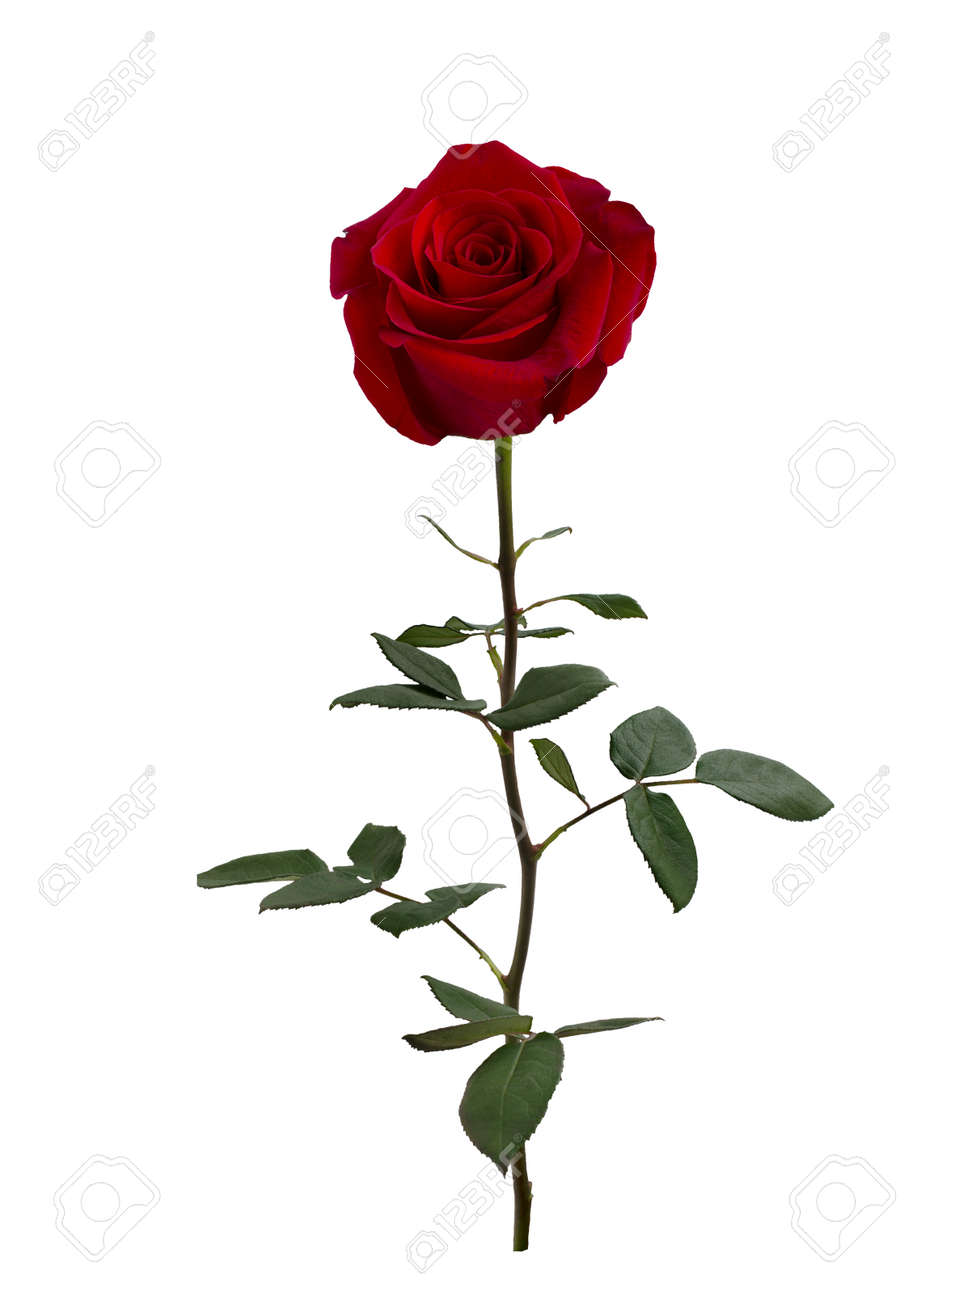 Dark red rose with green leaves - 140347846